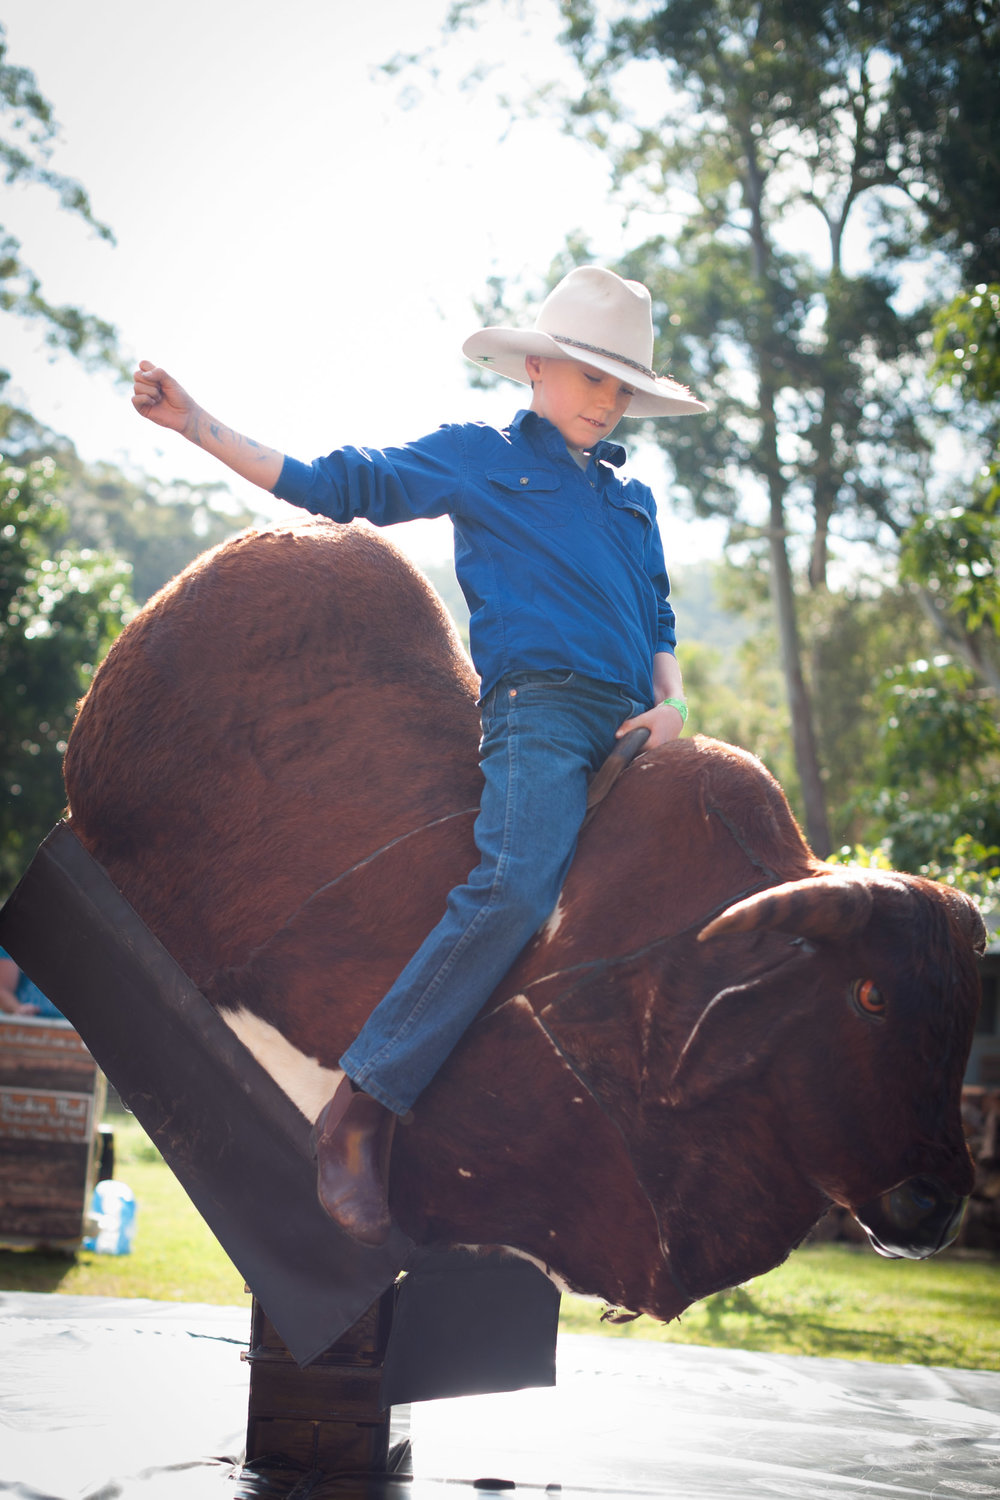 bucking bronco riding